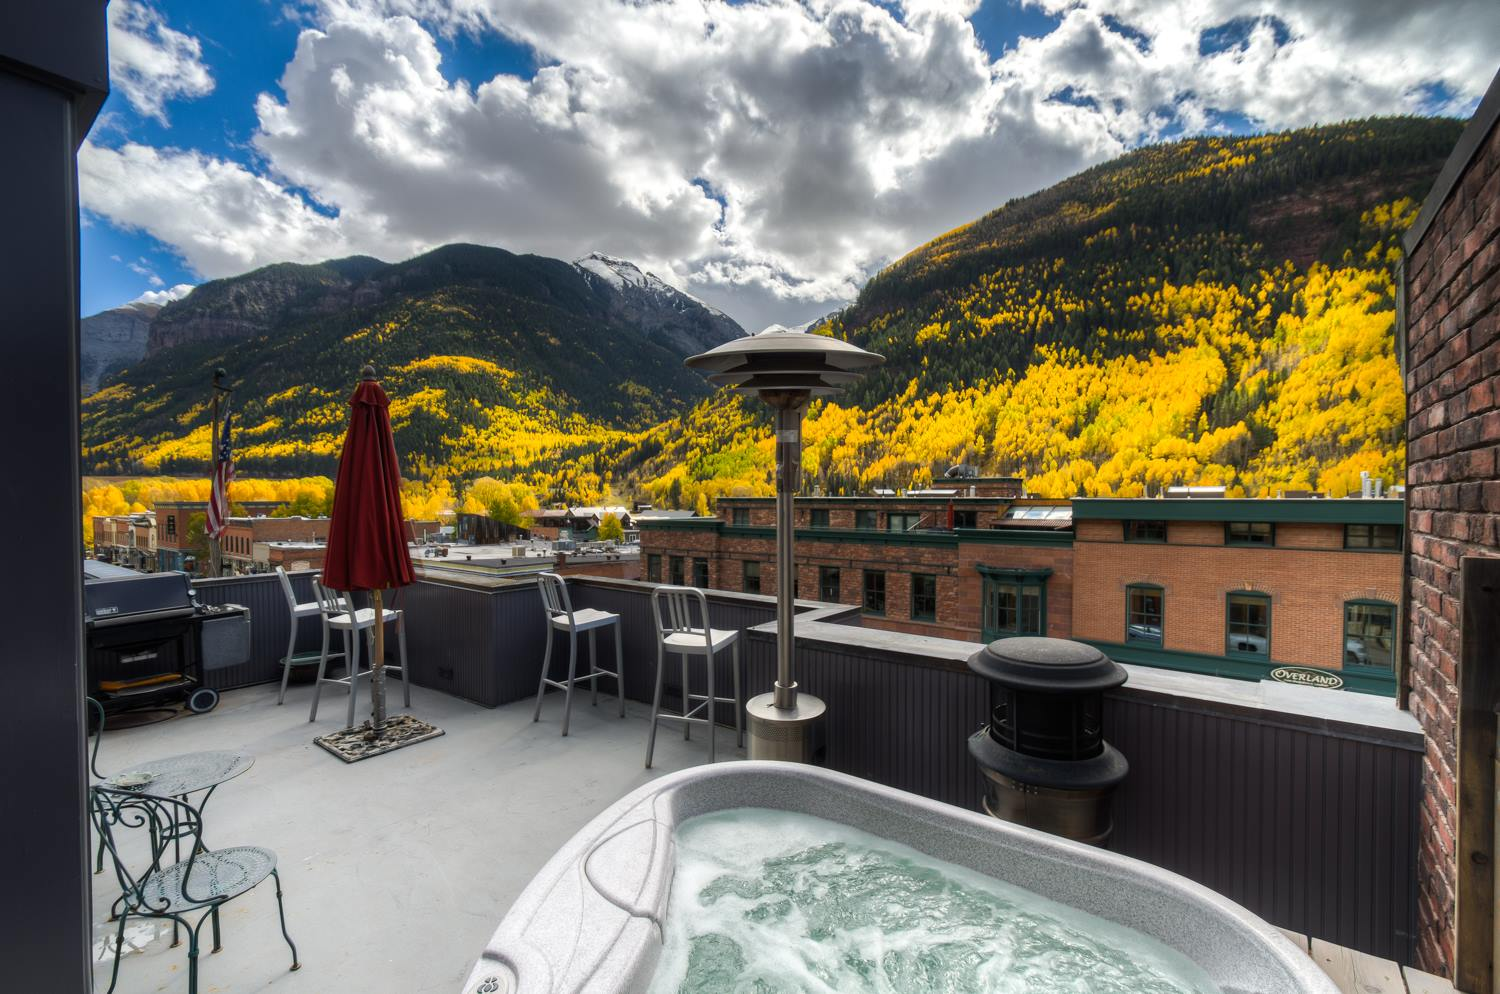 Accommodations In Telluride Colorado Vacation Rental.